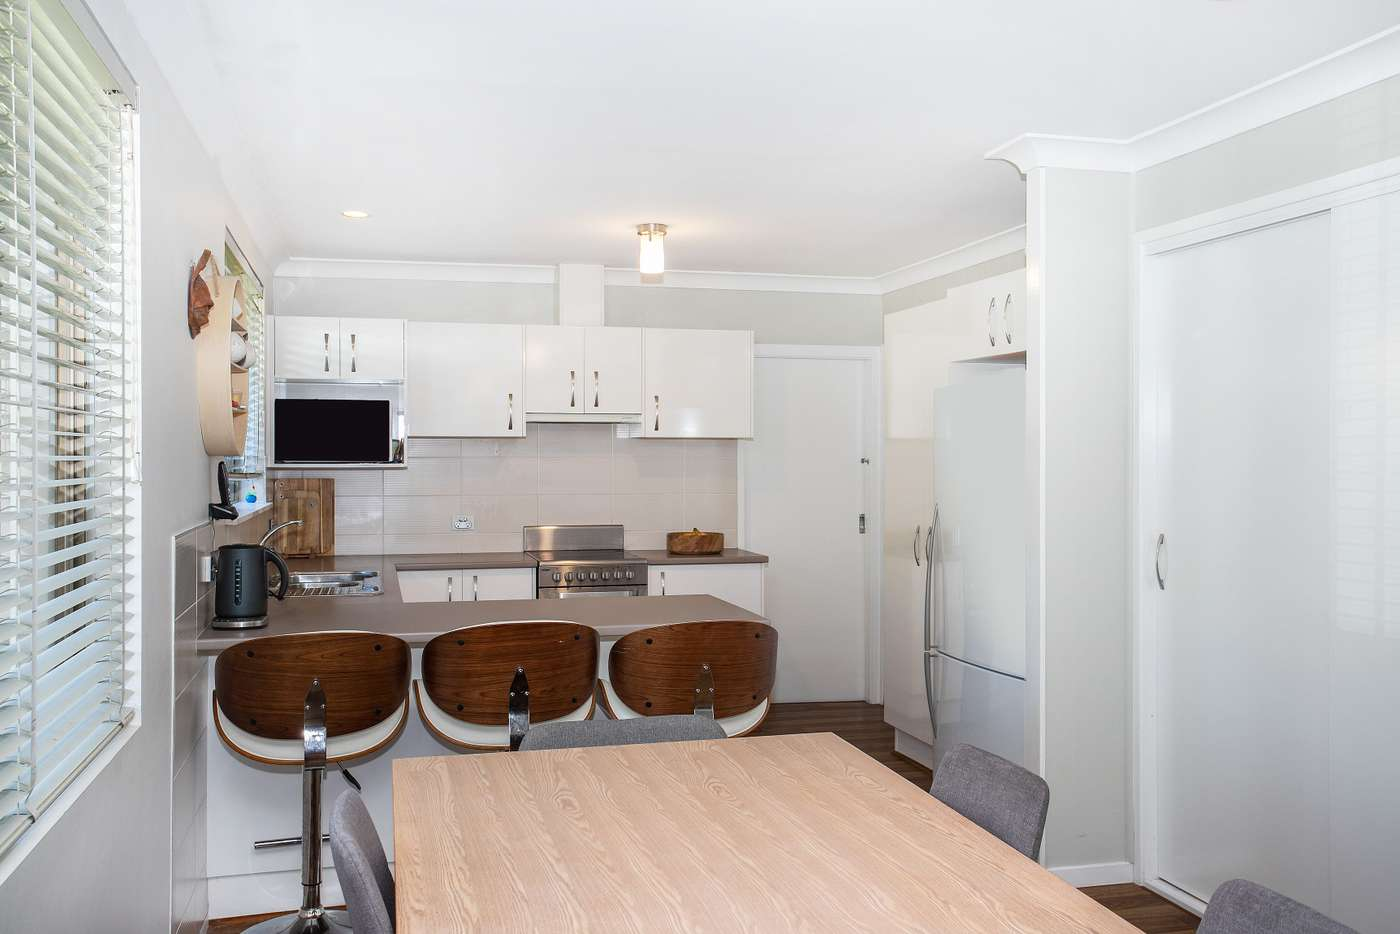 Fifth view of Homely house listing, 44 Clyde Street, Mollymook NSW 2539